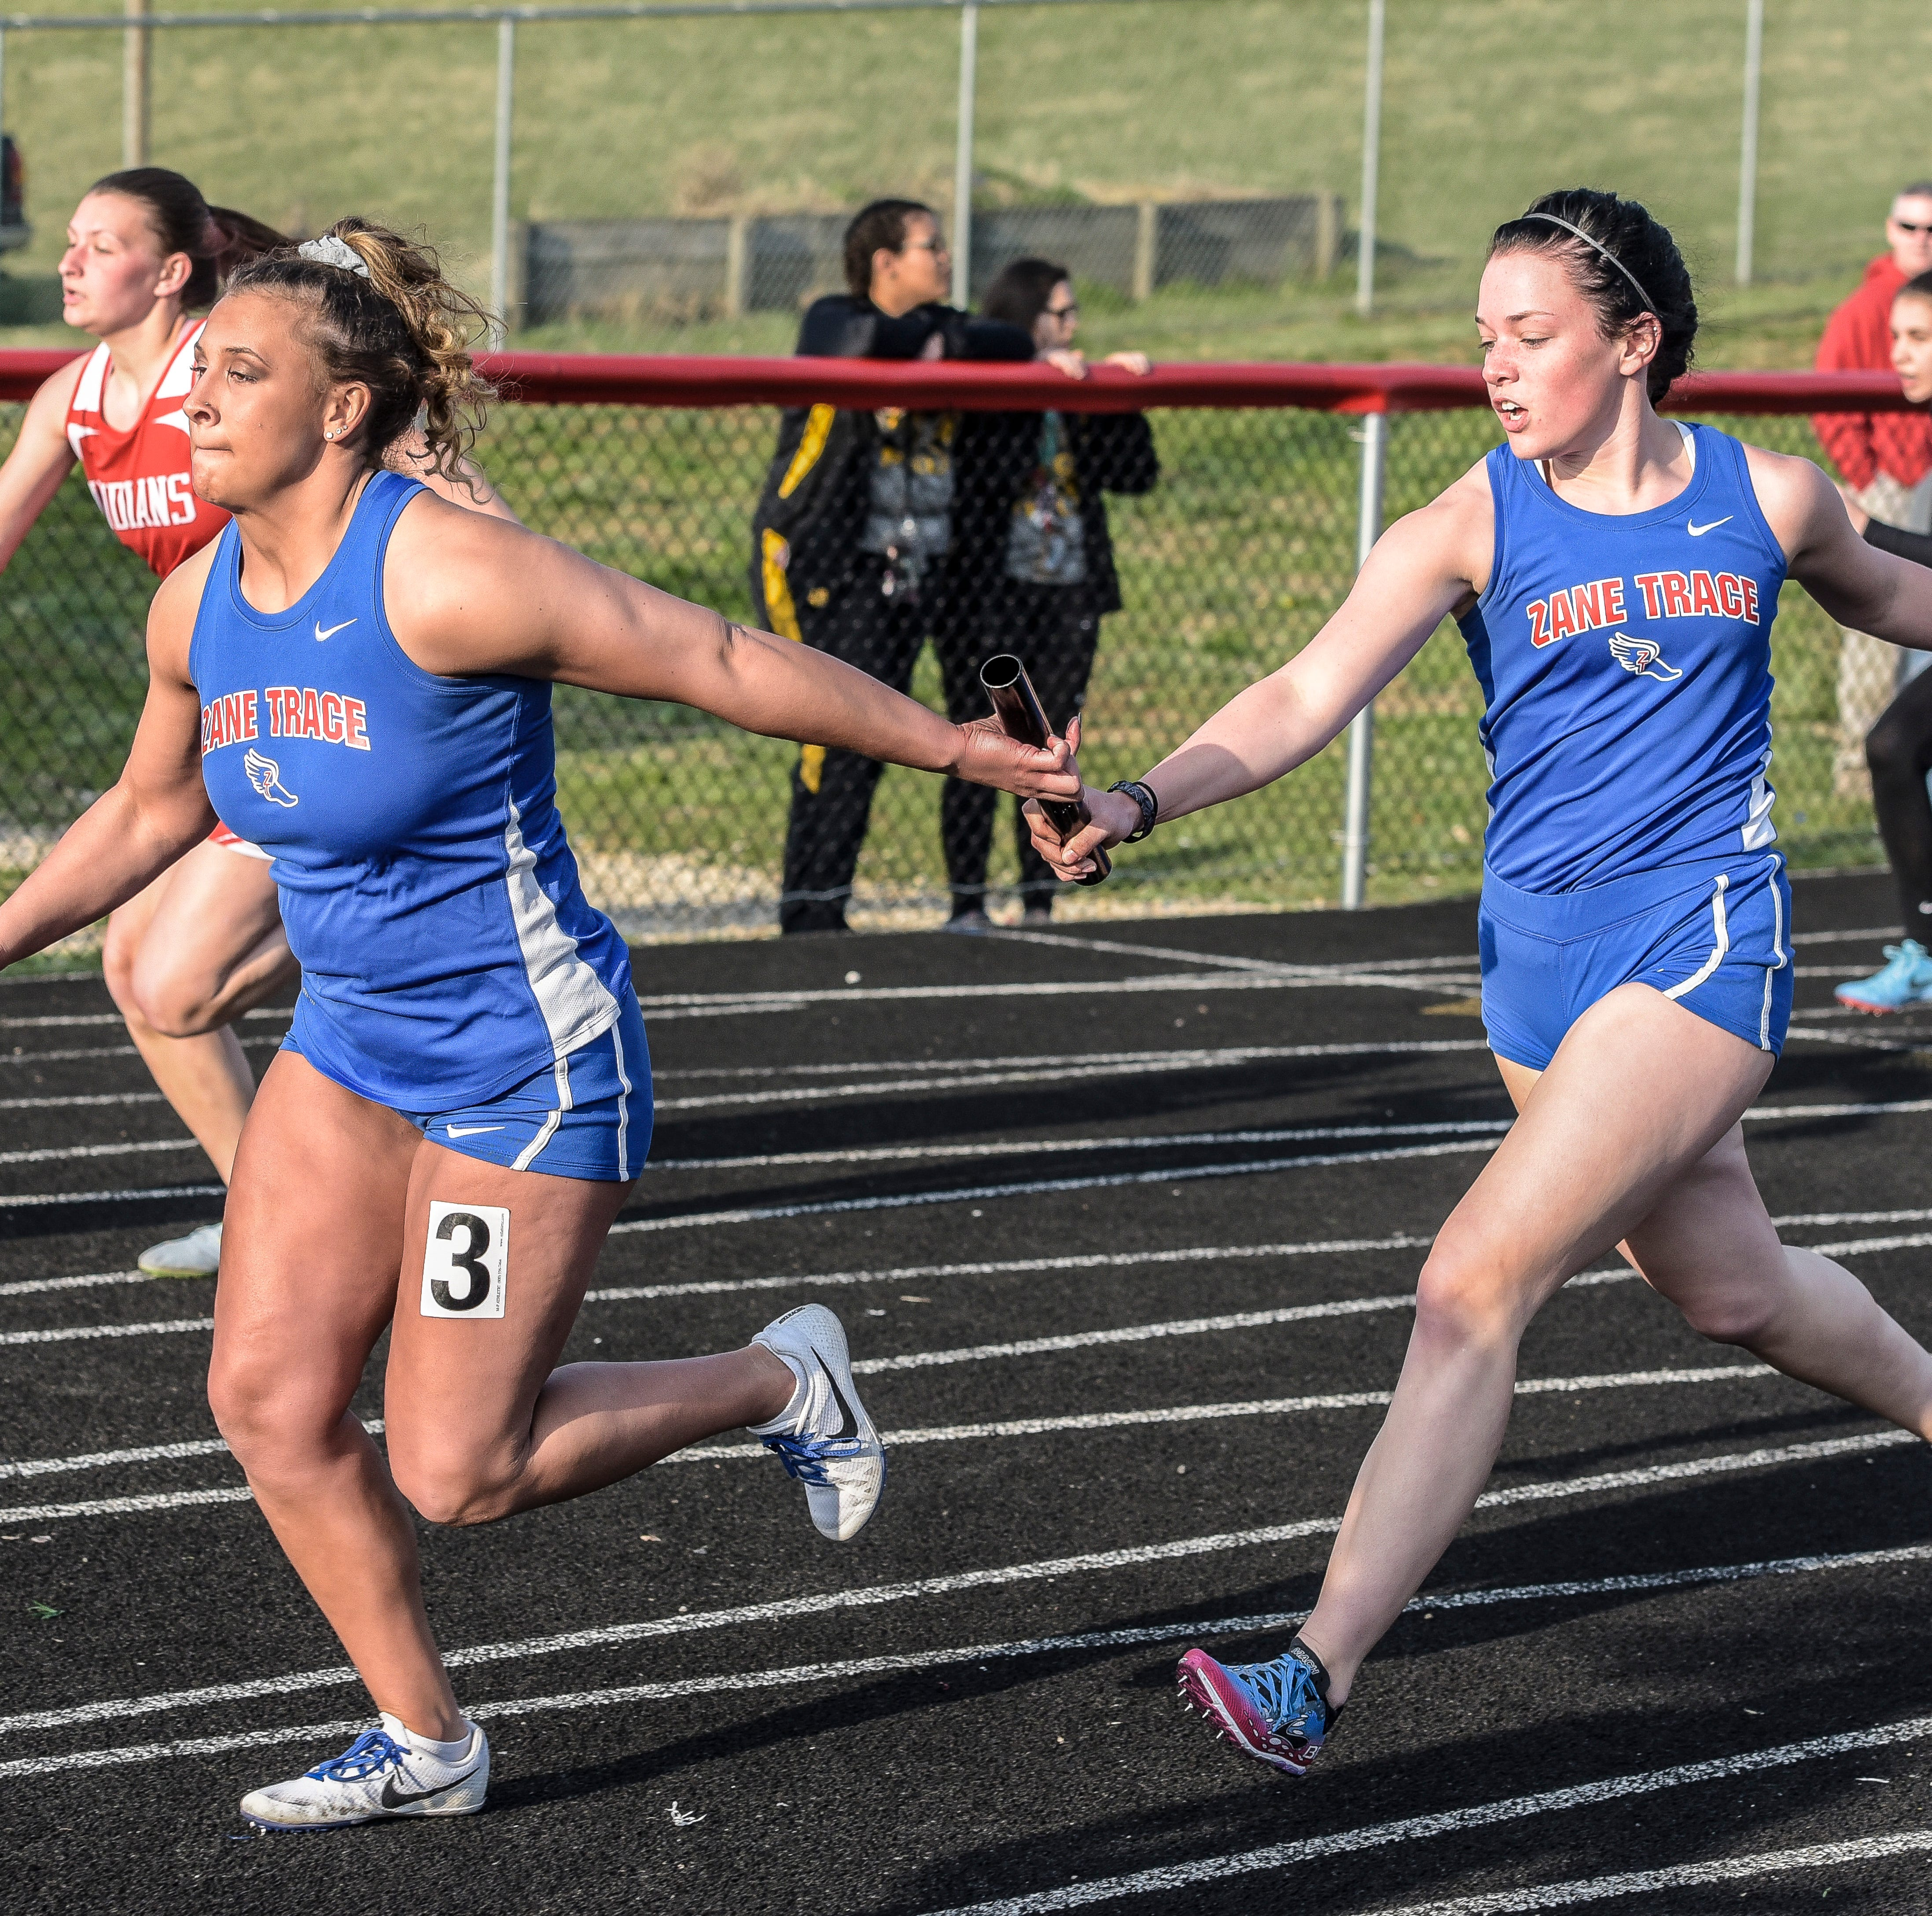 OHIO HS TRACK AND FIELD: Can last year's best teams stay on top?